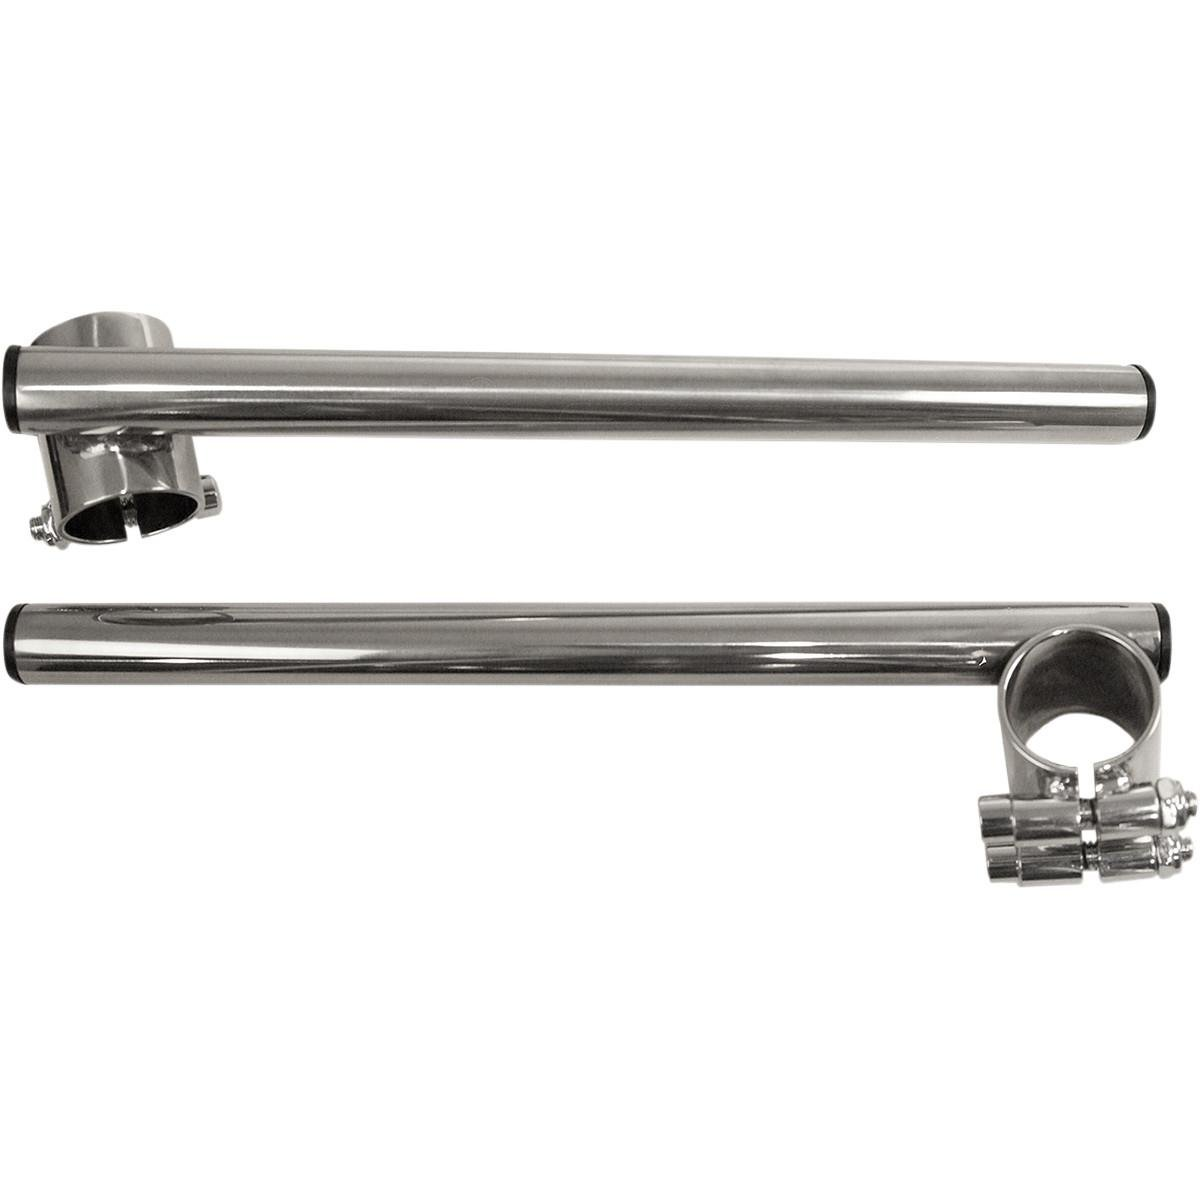 Steel Clip-on Handlebars Color: Chrome 23-93121 Handle Bar Size: 7//8in. Chrome Emgo 7//8in 35mm Fork Tube